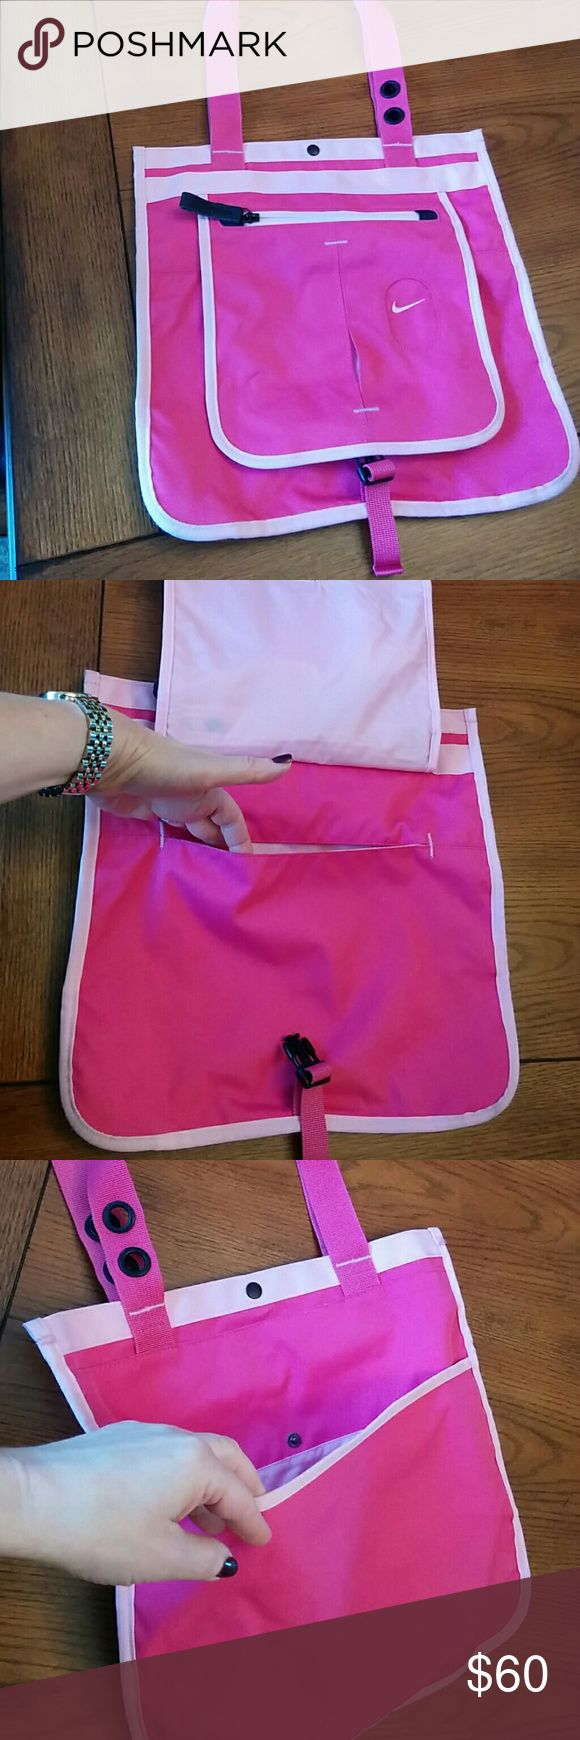 """Nike hot pink  bag Nike hot pink canvas bag has 3 outside pockets, zipper pocket inside. Lightweight, durable polyester canvas.  In very good condition. 13""""x13"""", handle drop 10"""". Detachable purse  4""""x5.5"""". Nike Bags Shoulder Bags"""